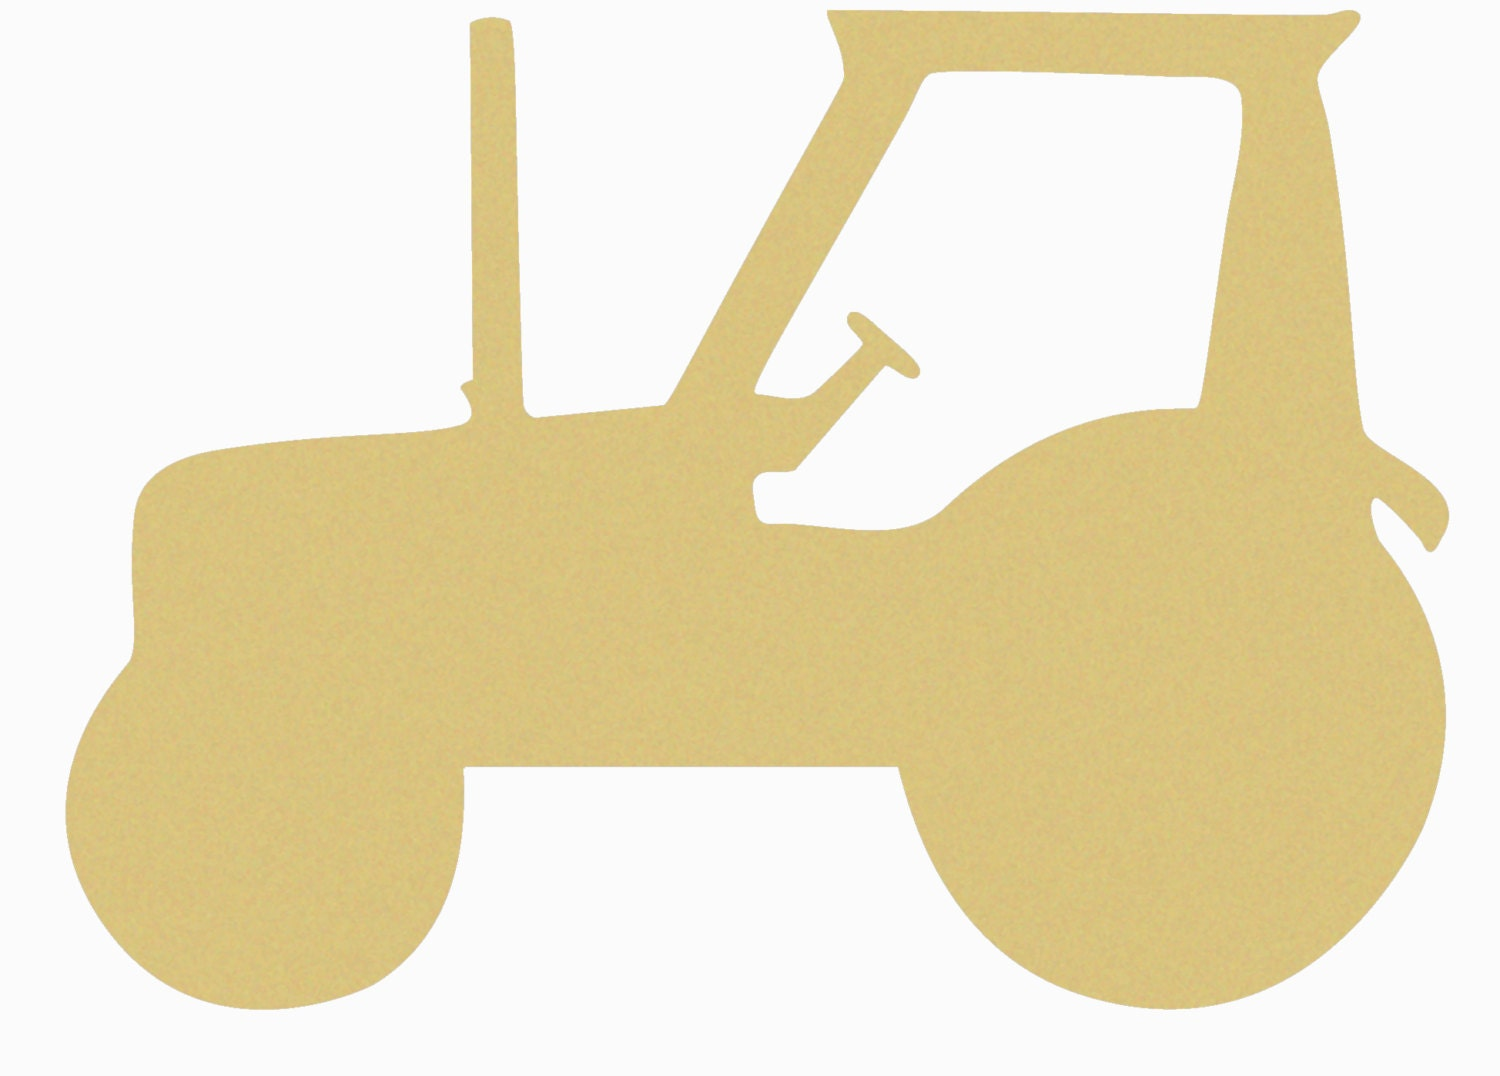 John Deere Tractor Cutouts : Tractor unfinished wooden craft shape do it yourself from